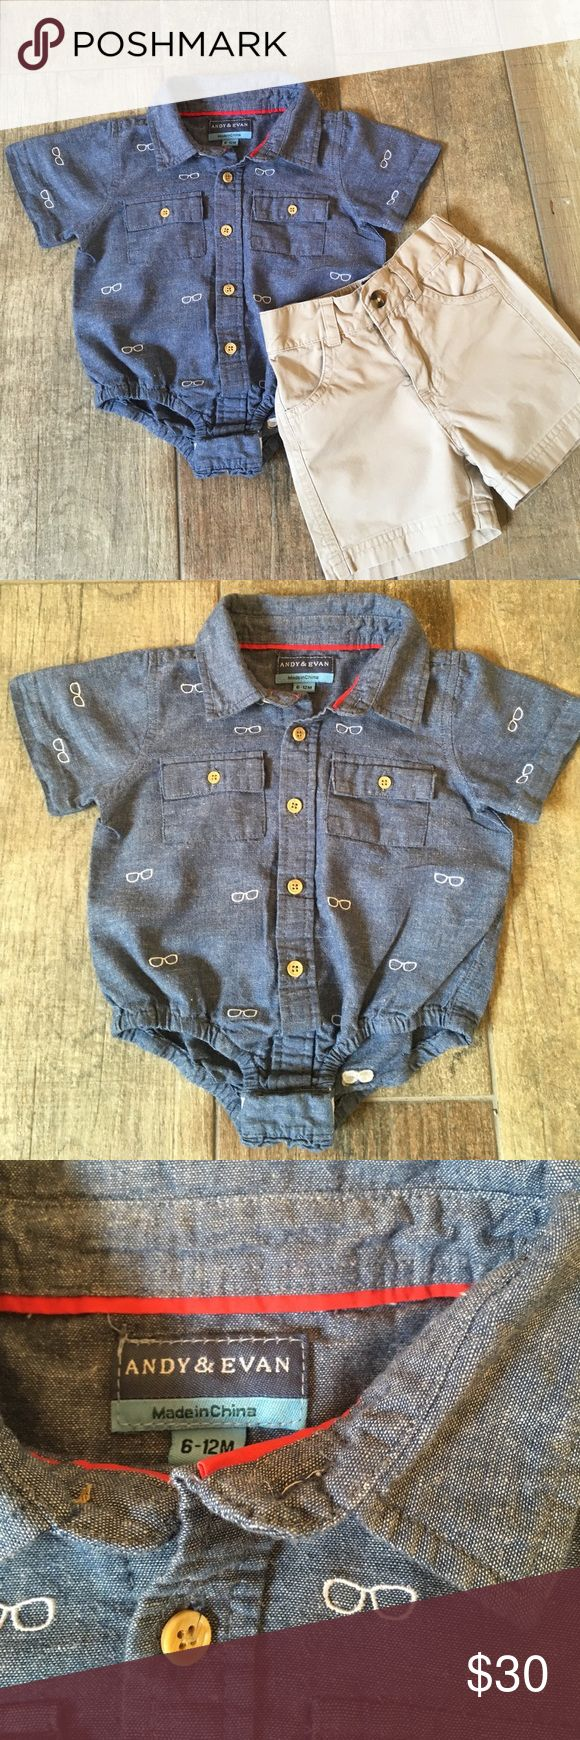 Andy & Evan Chambray & Khaki Outfit Outfit includes an amazing Chambray Button Down bodysuit with Embroidered sunglasses and khaki shorts with zipper and Button at waist. This outfit is amazing quality as all of Andy & Evan clothing. In perfect condition. Both size 6 - 12 months. Andy & Evan Matching Sets